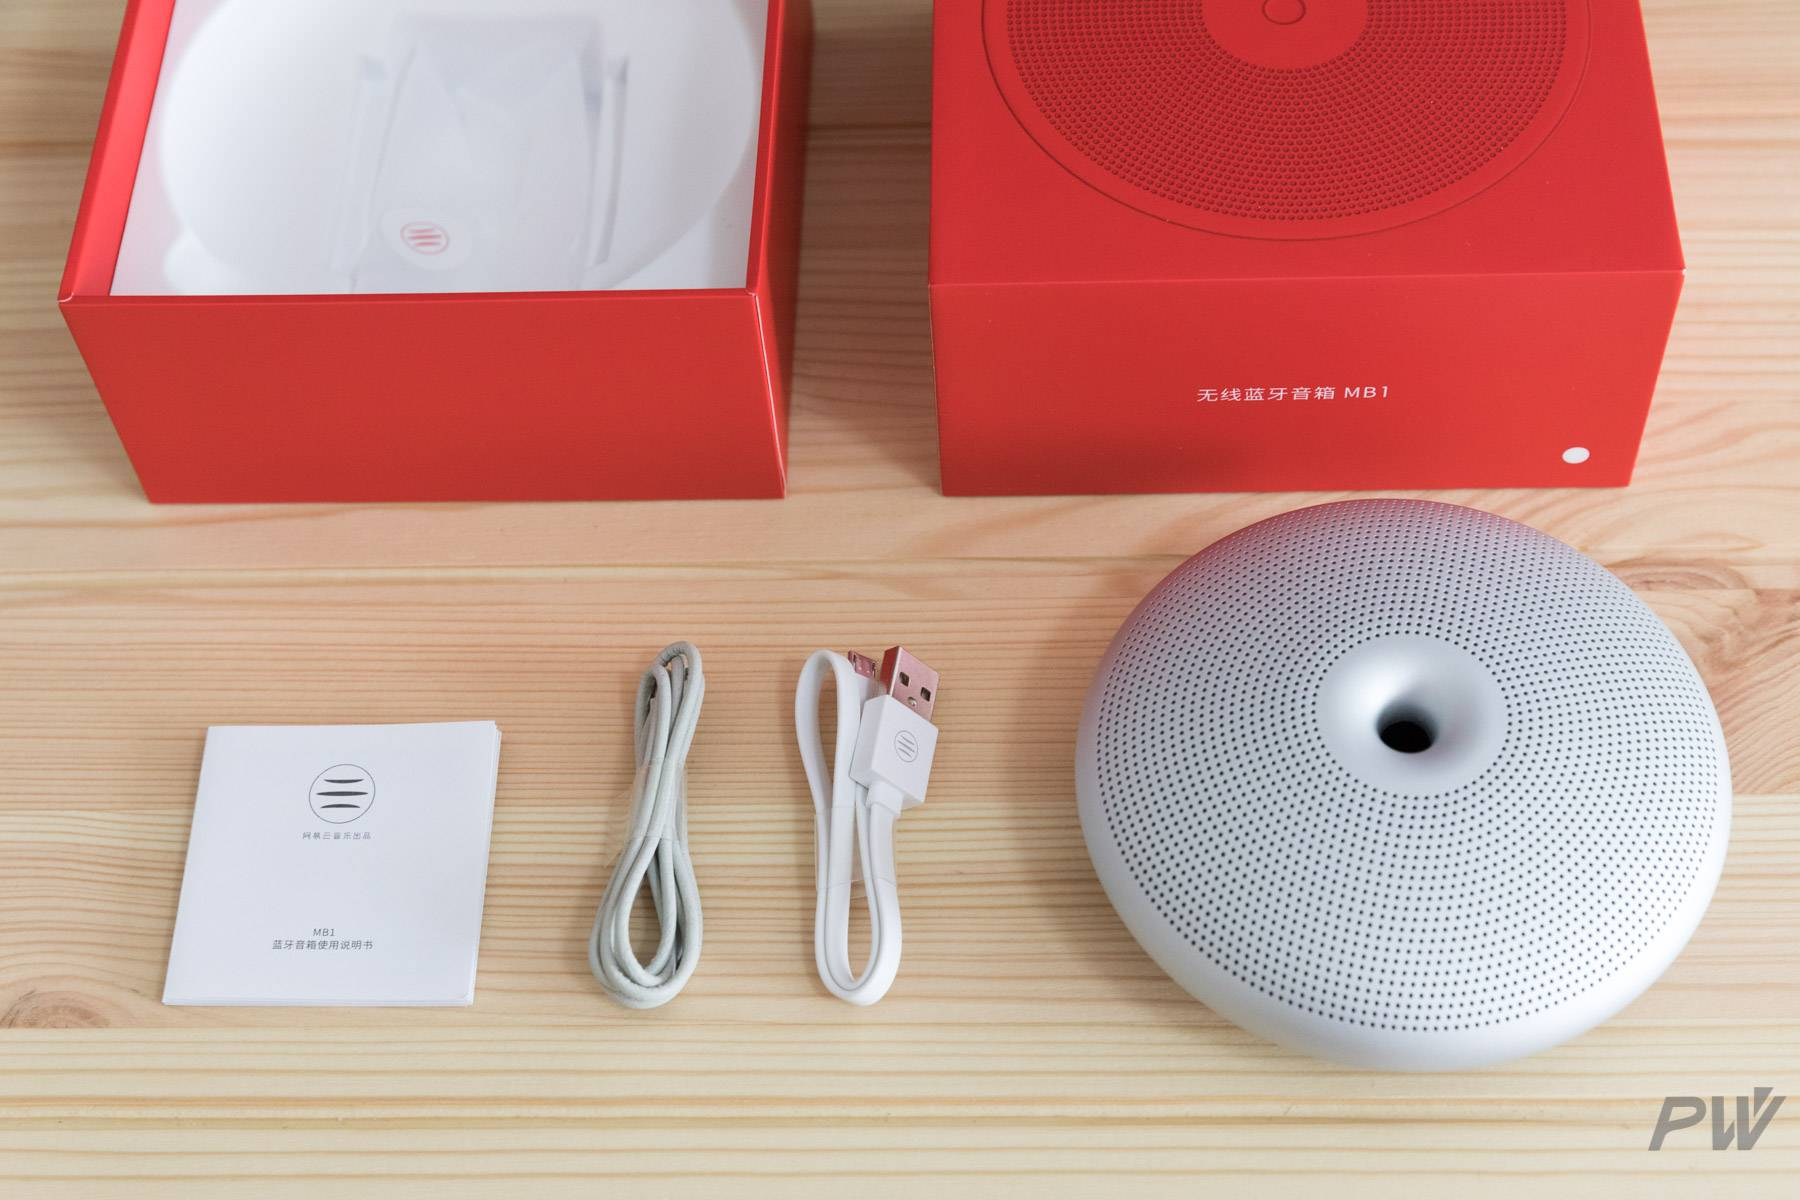 netease music bluetooth speaker Photo by Hao Ying-15